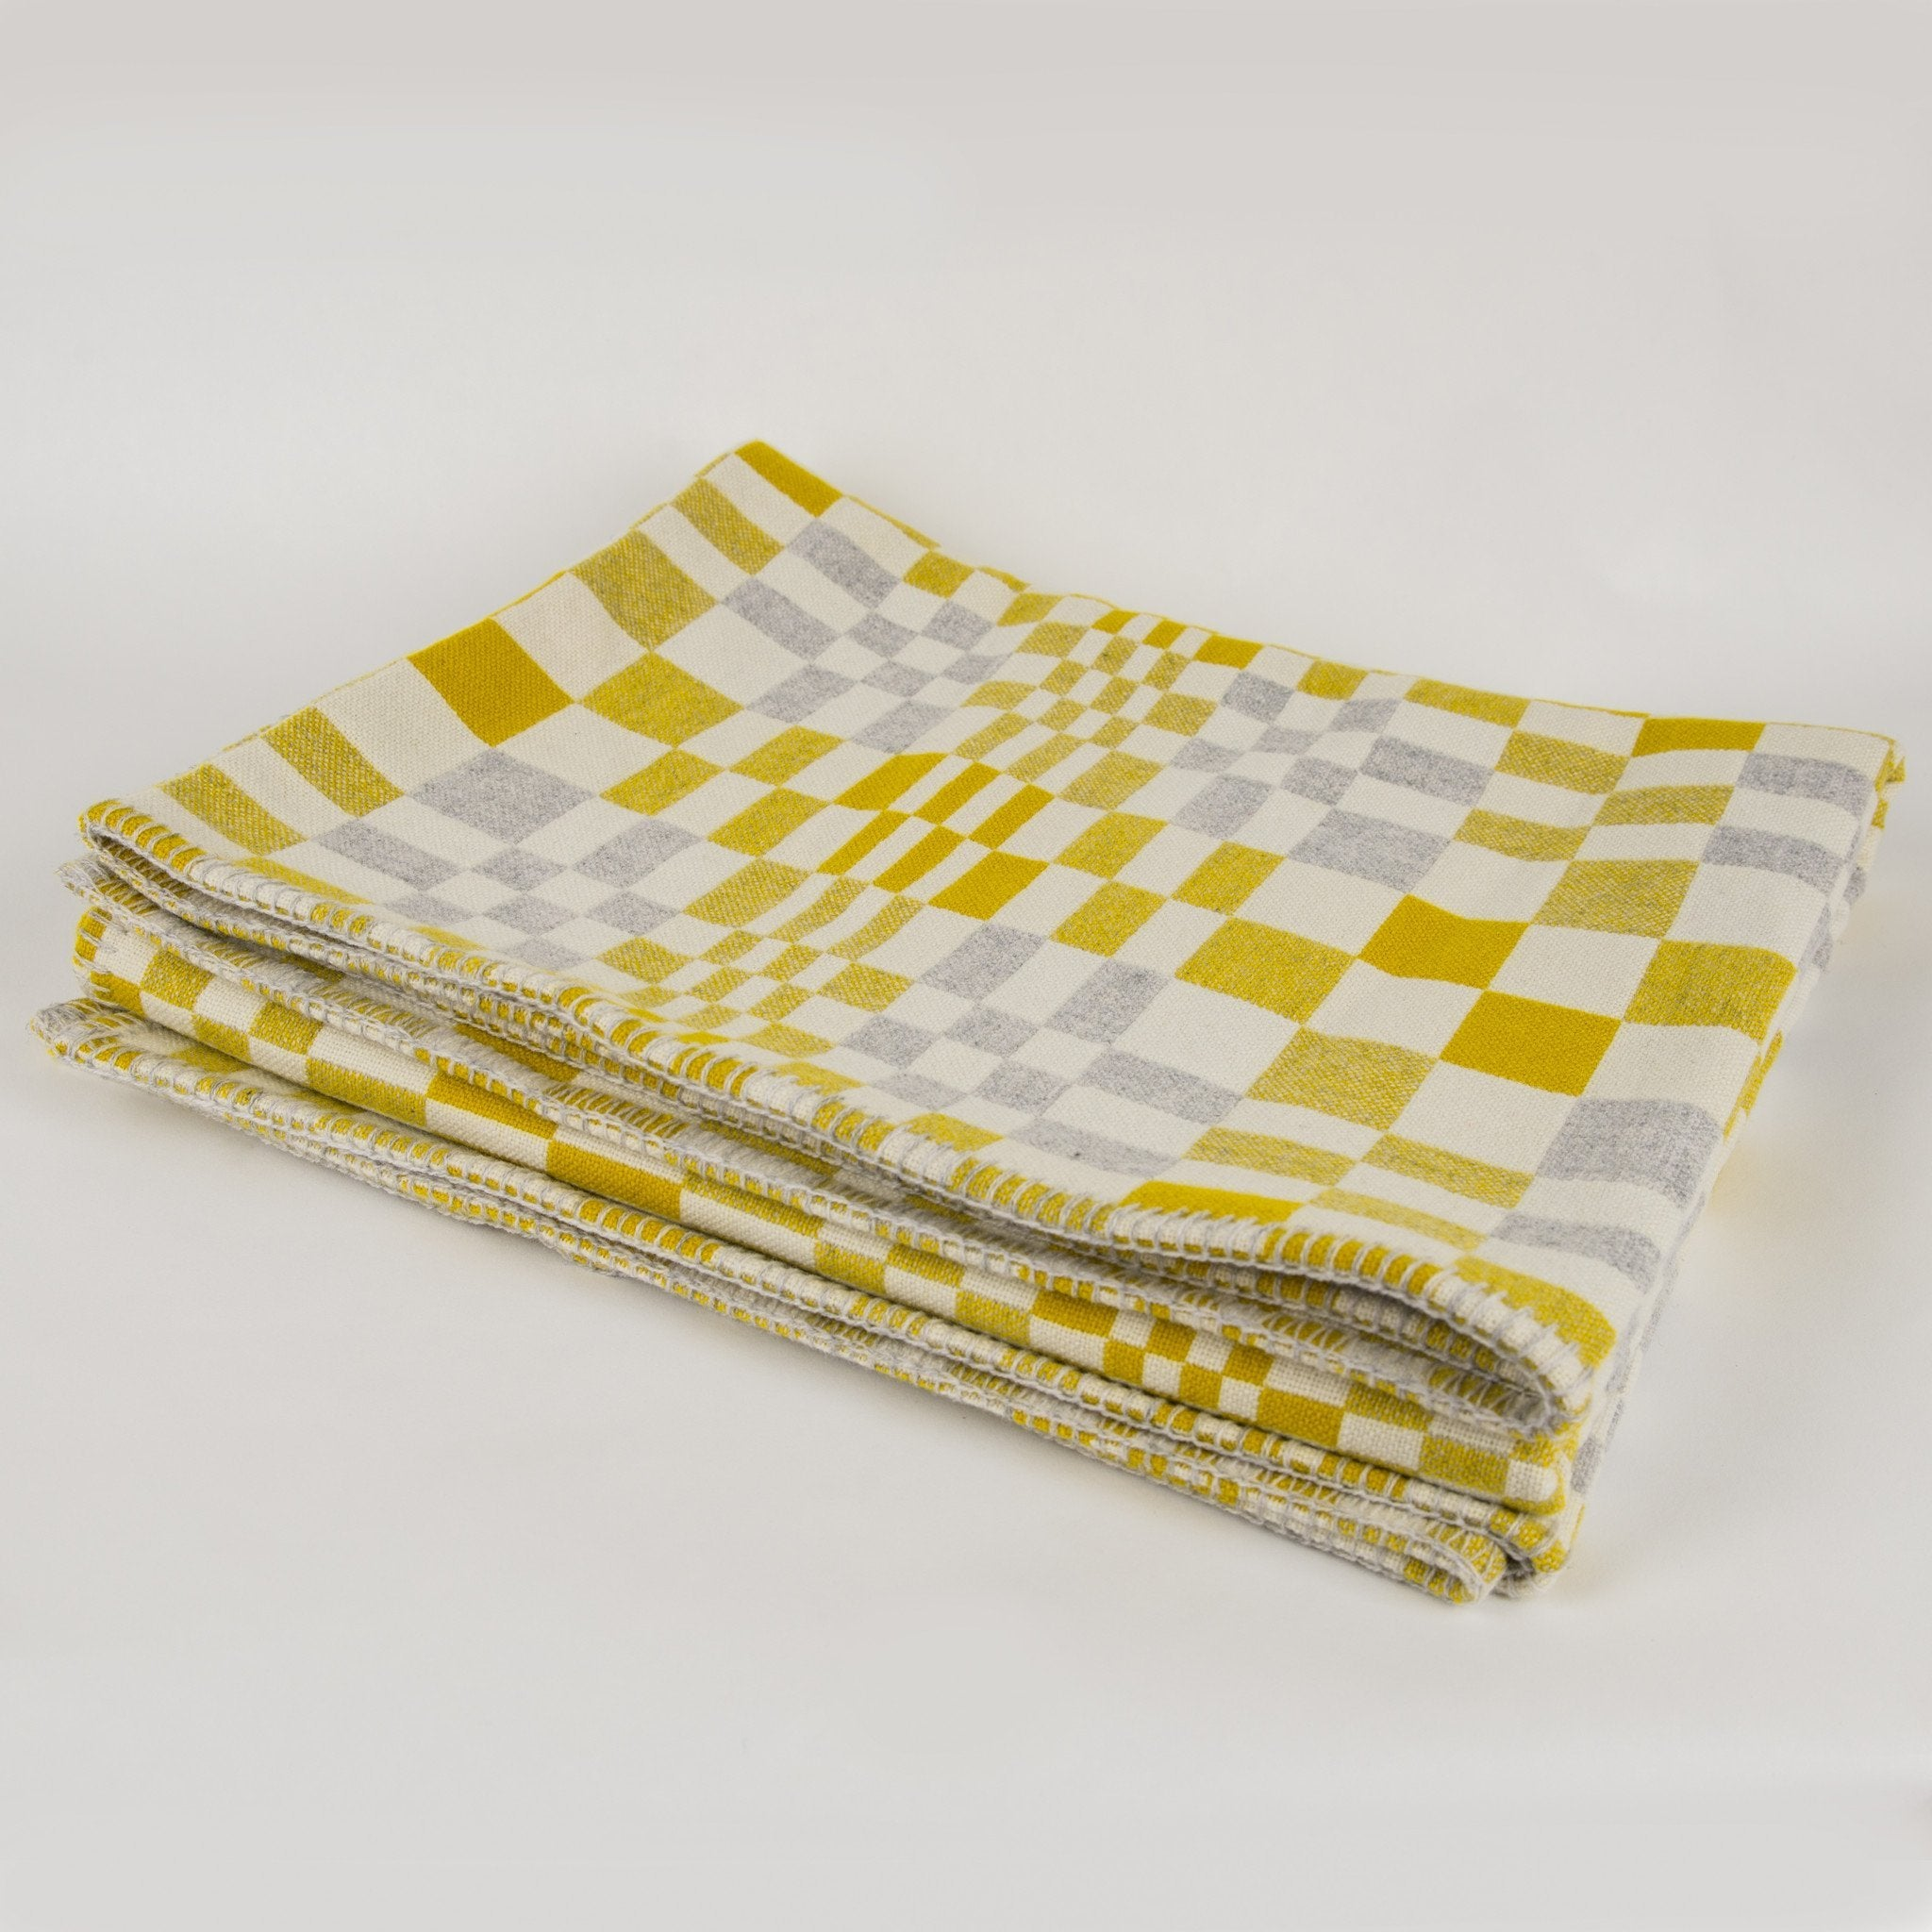 Eleanor Pritchard Sandstone Optic blanket